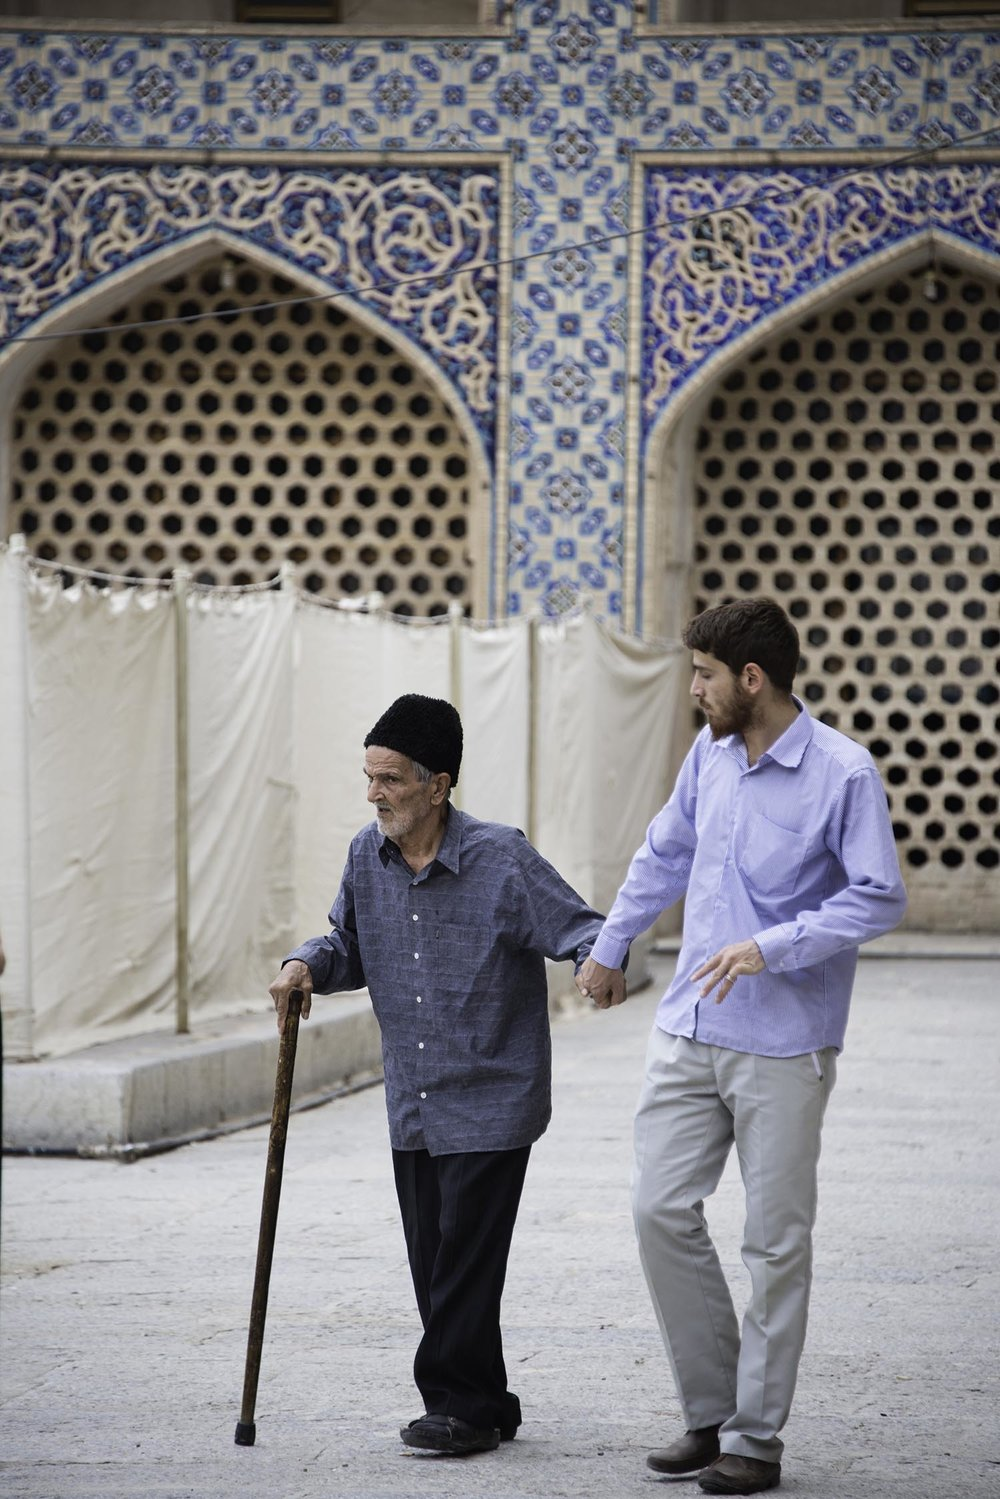 Young Man Walking With Old Man